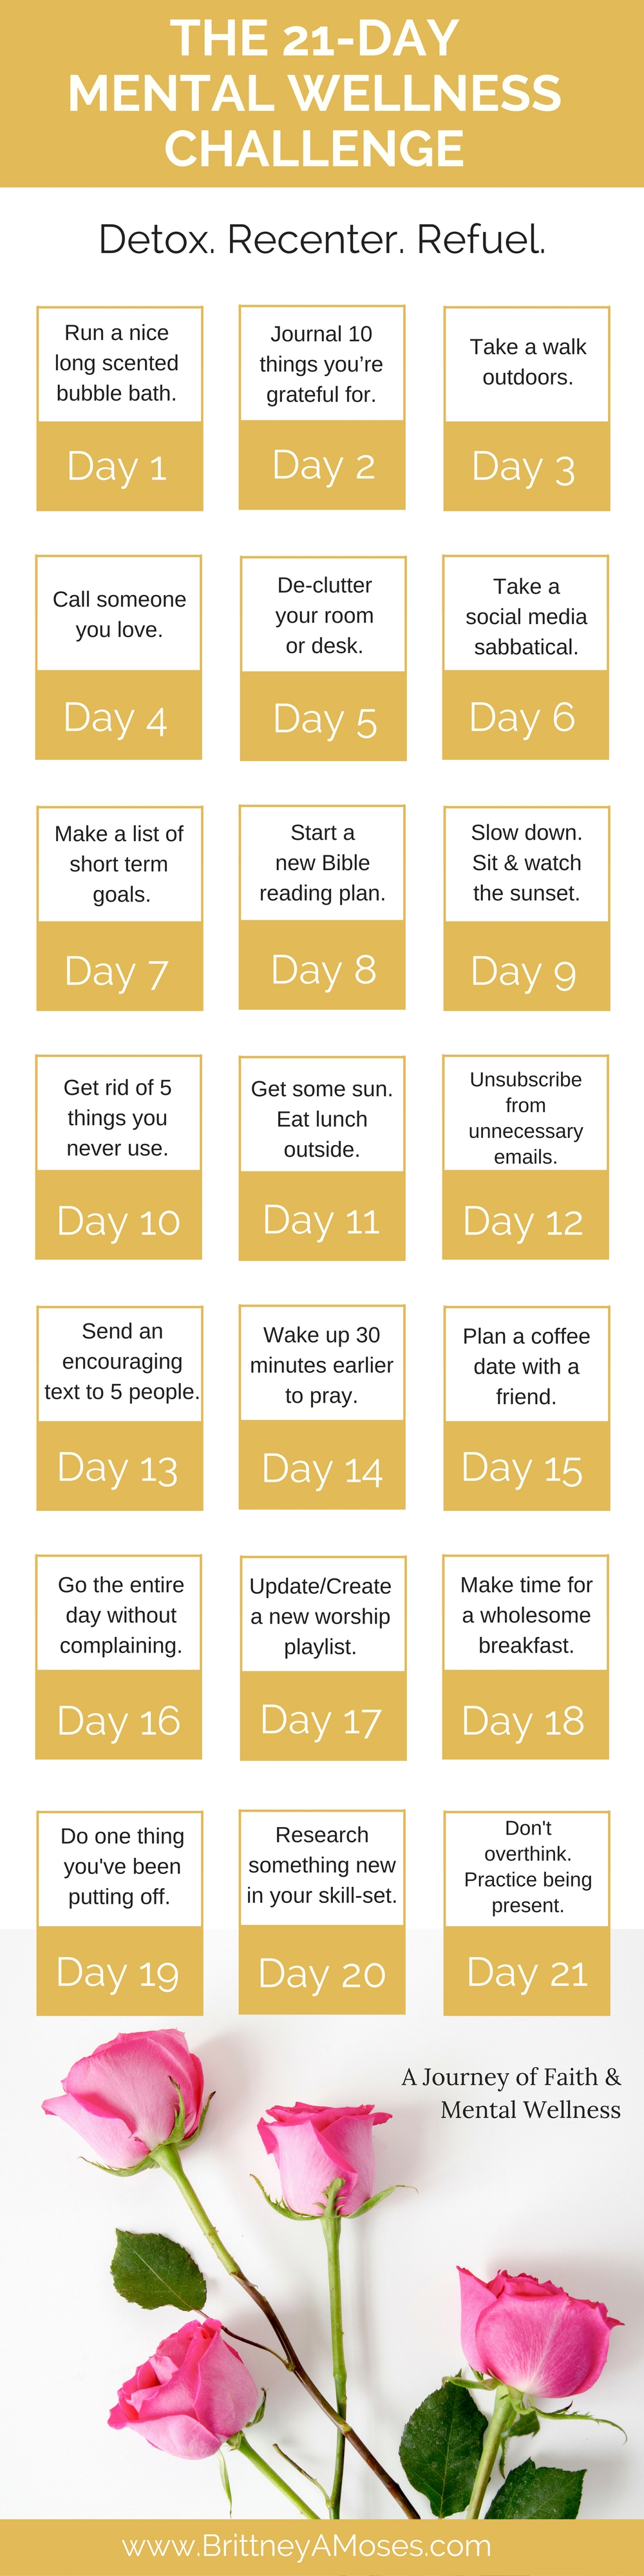 the 21 day mental wellness challenge brittney moses